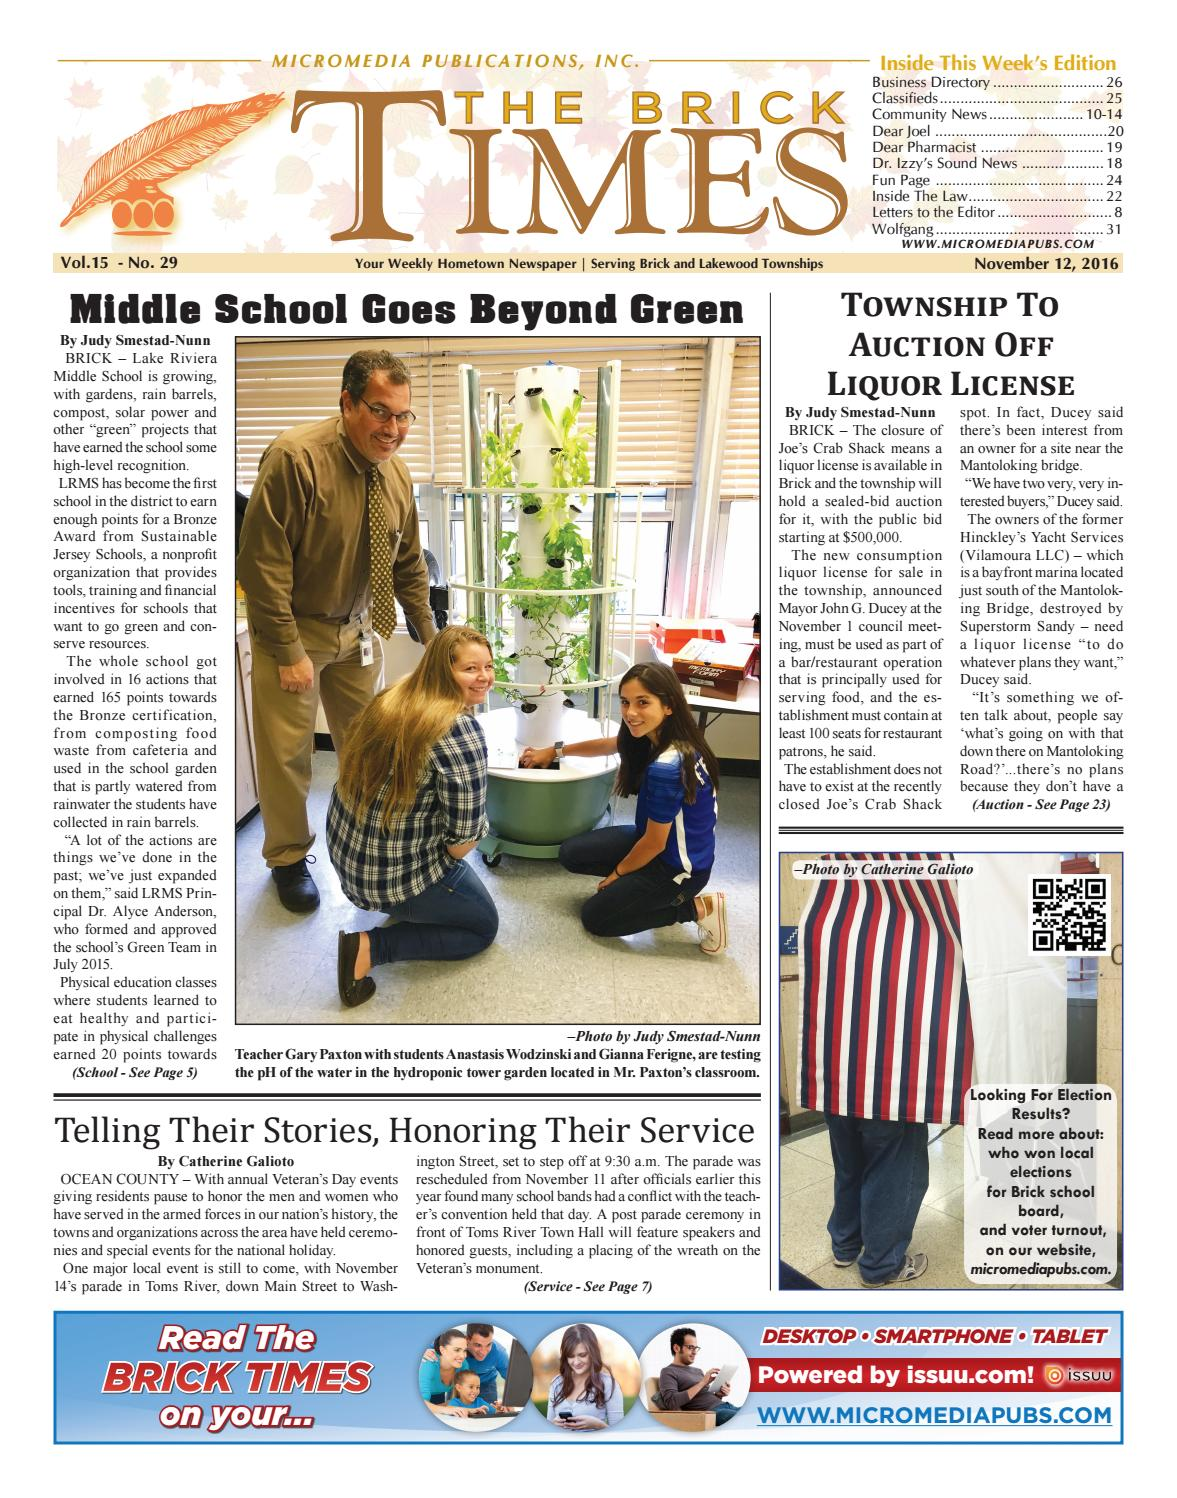 2016-11-12 - The Brick Times by Micromedia Publications - issuu